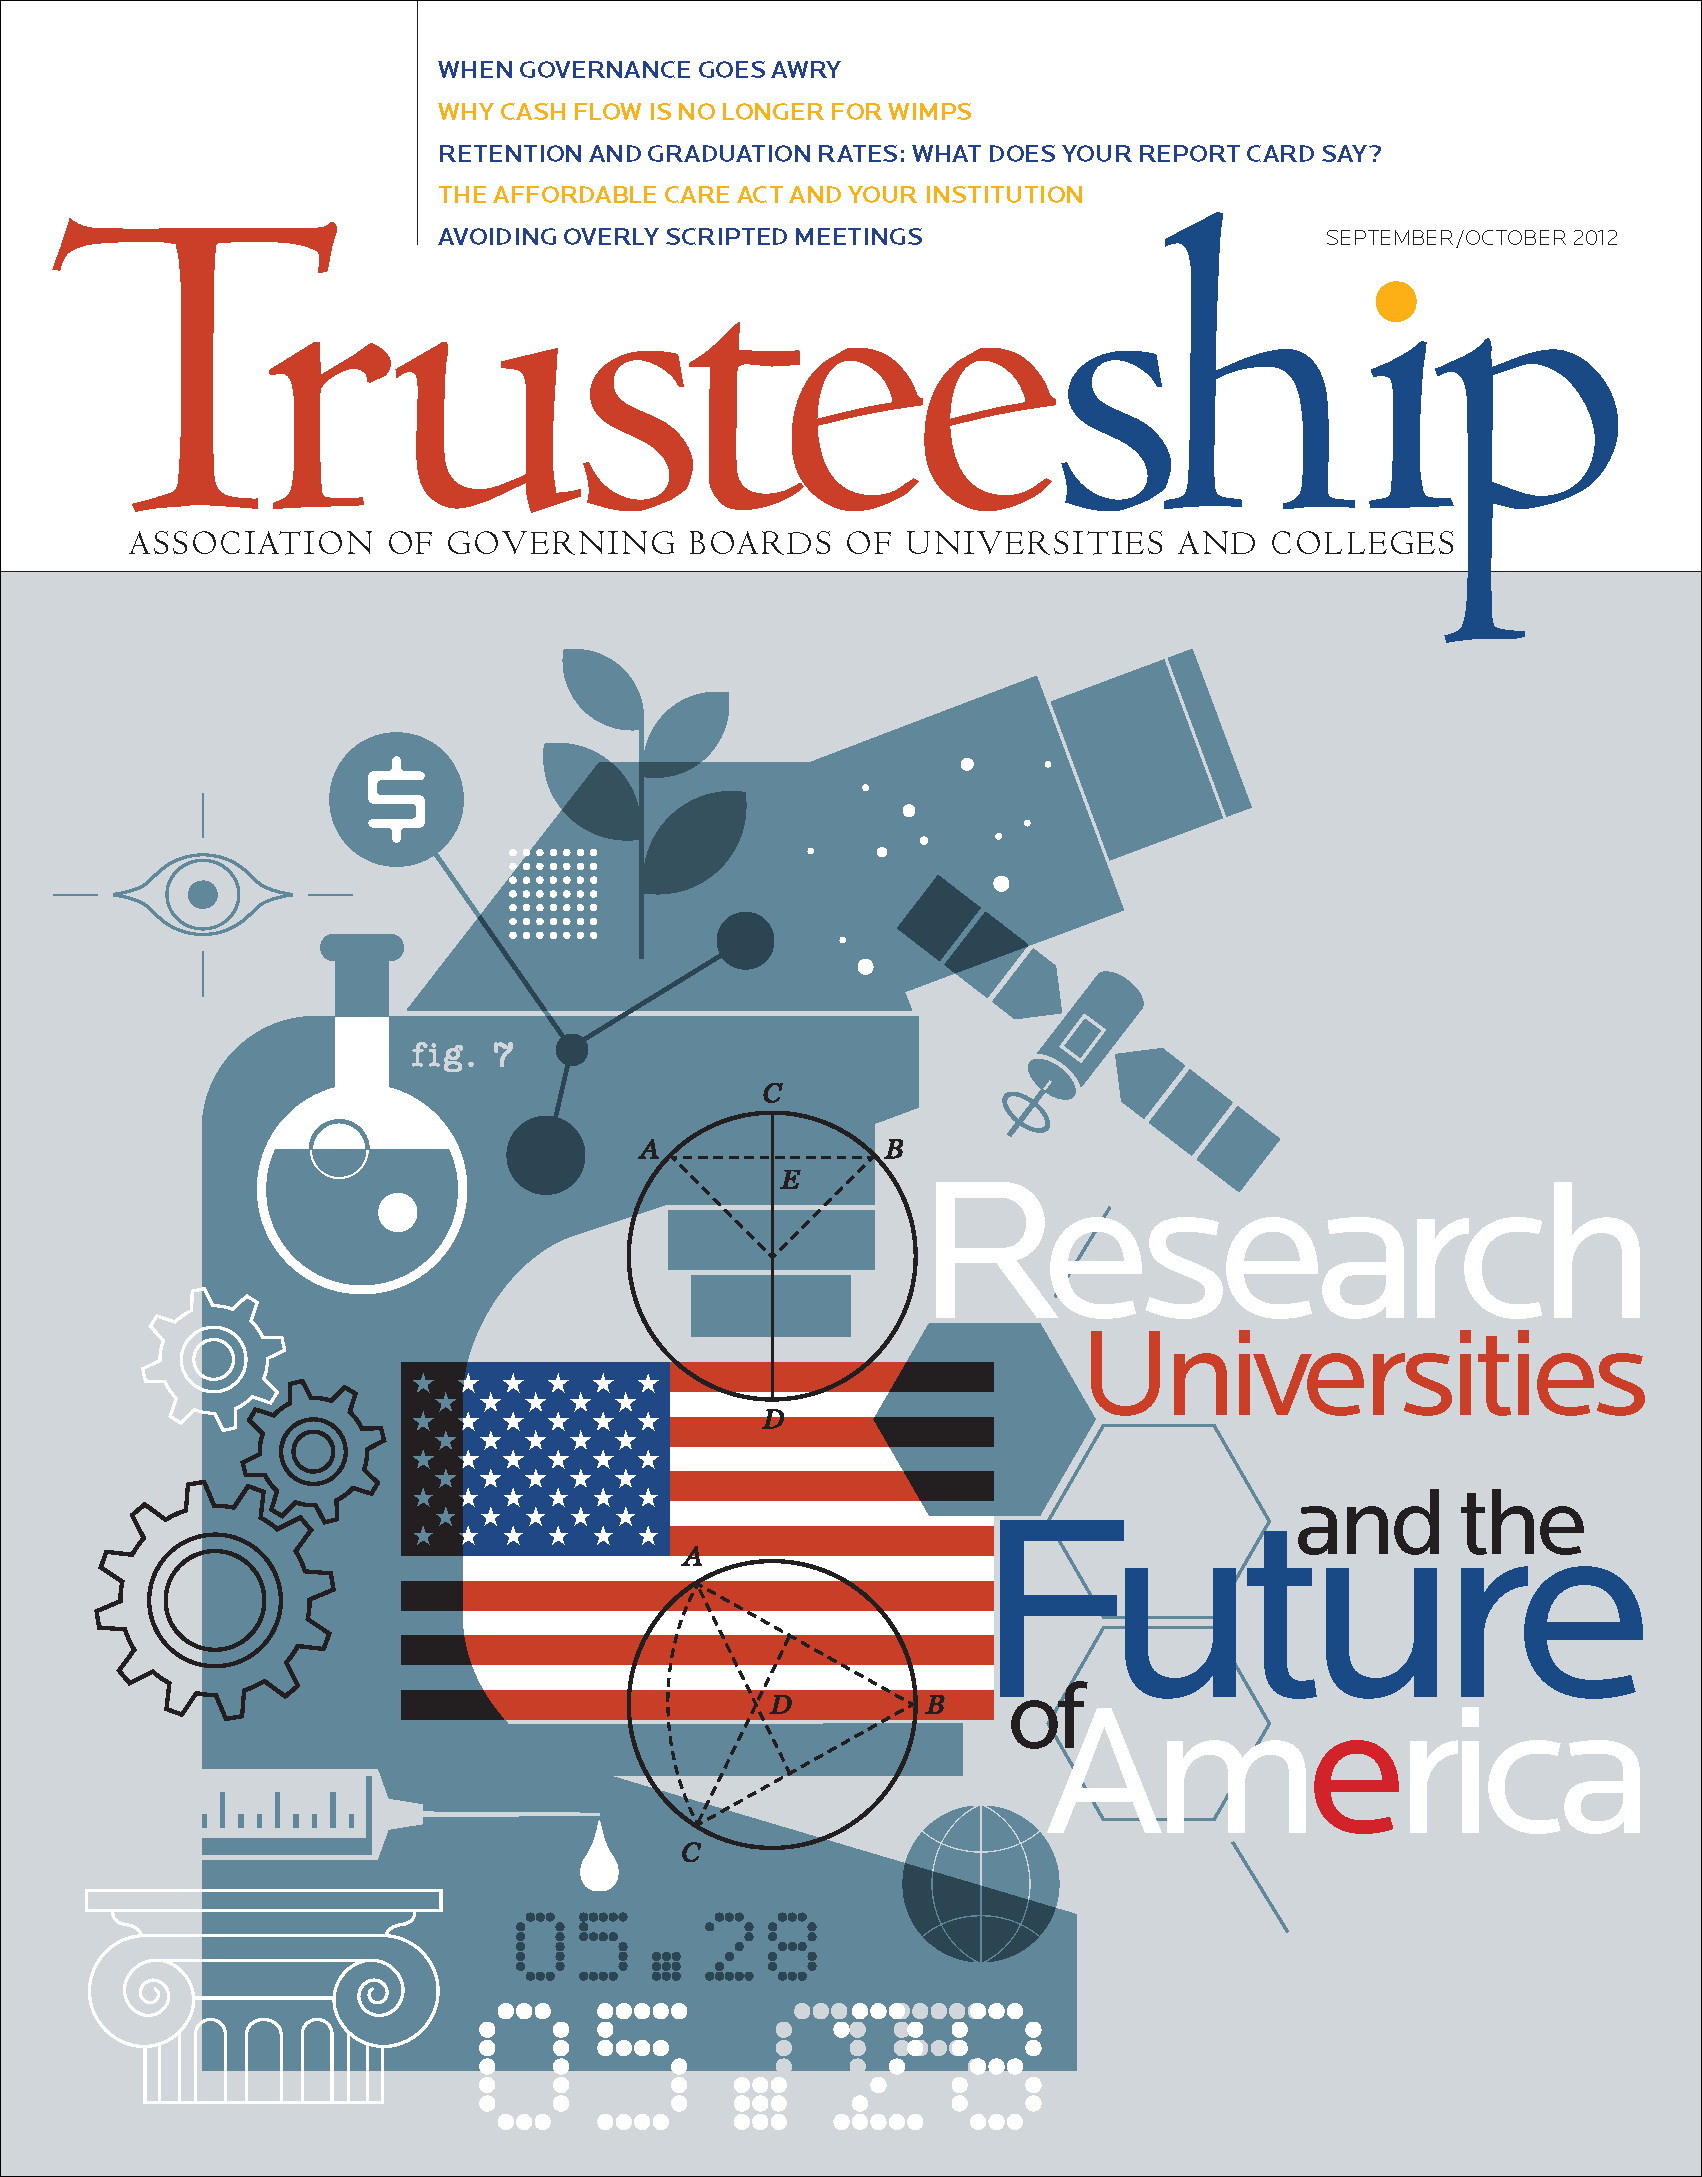 Research Universities and the Future of America, September/October 2012